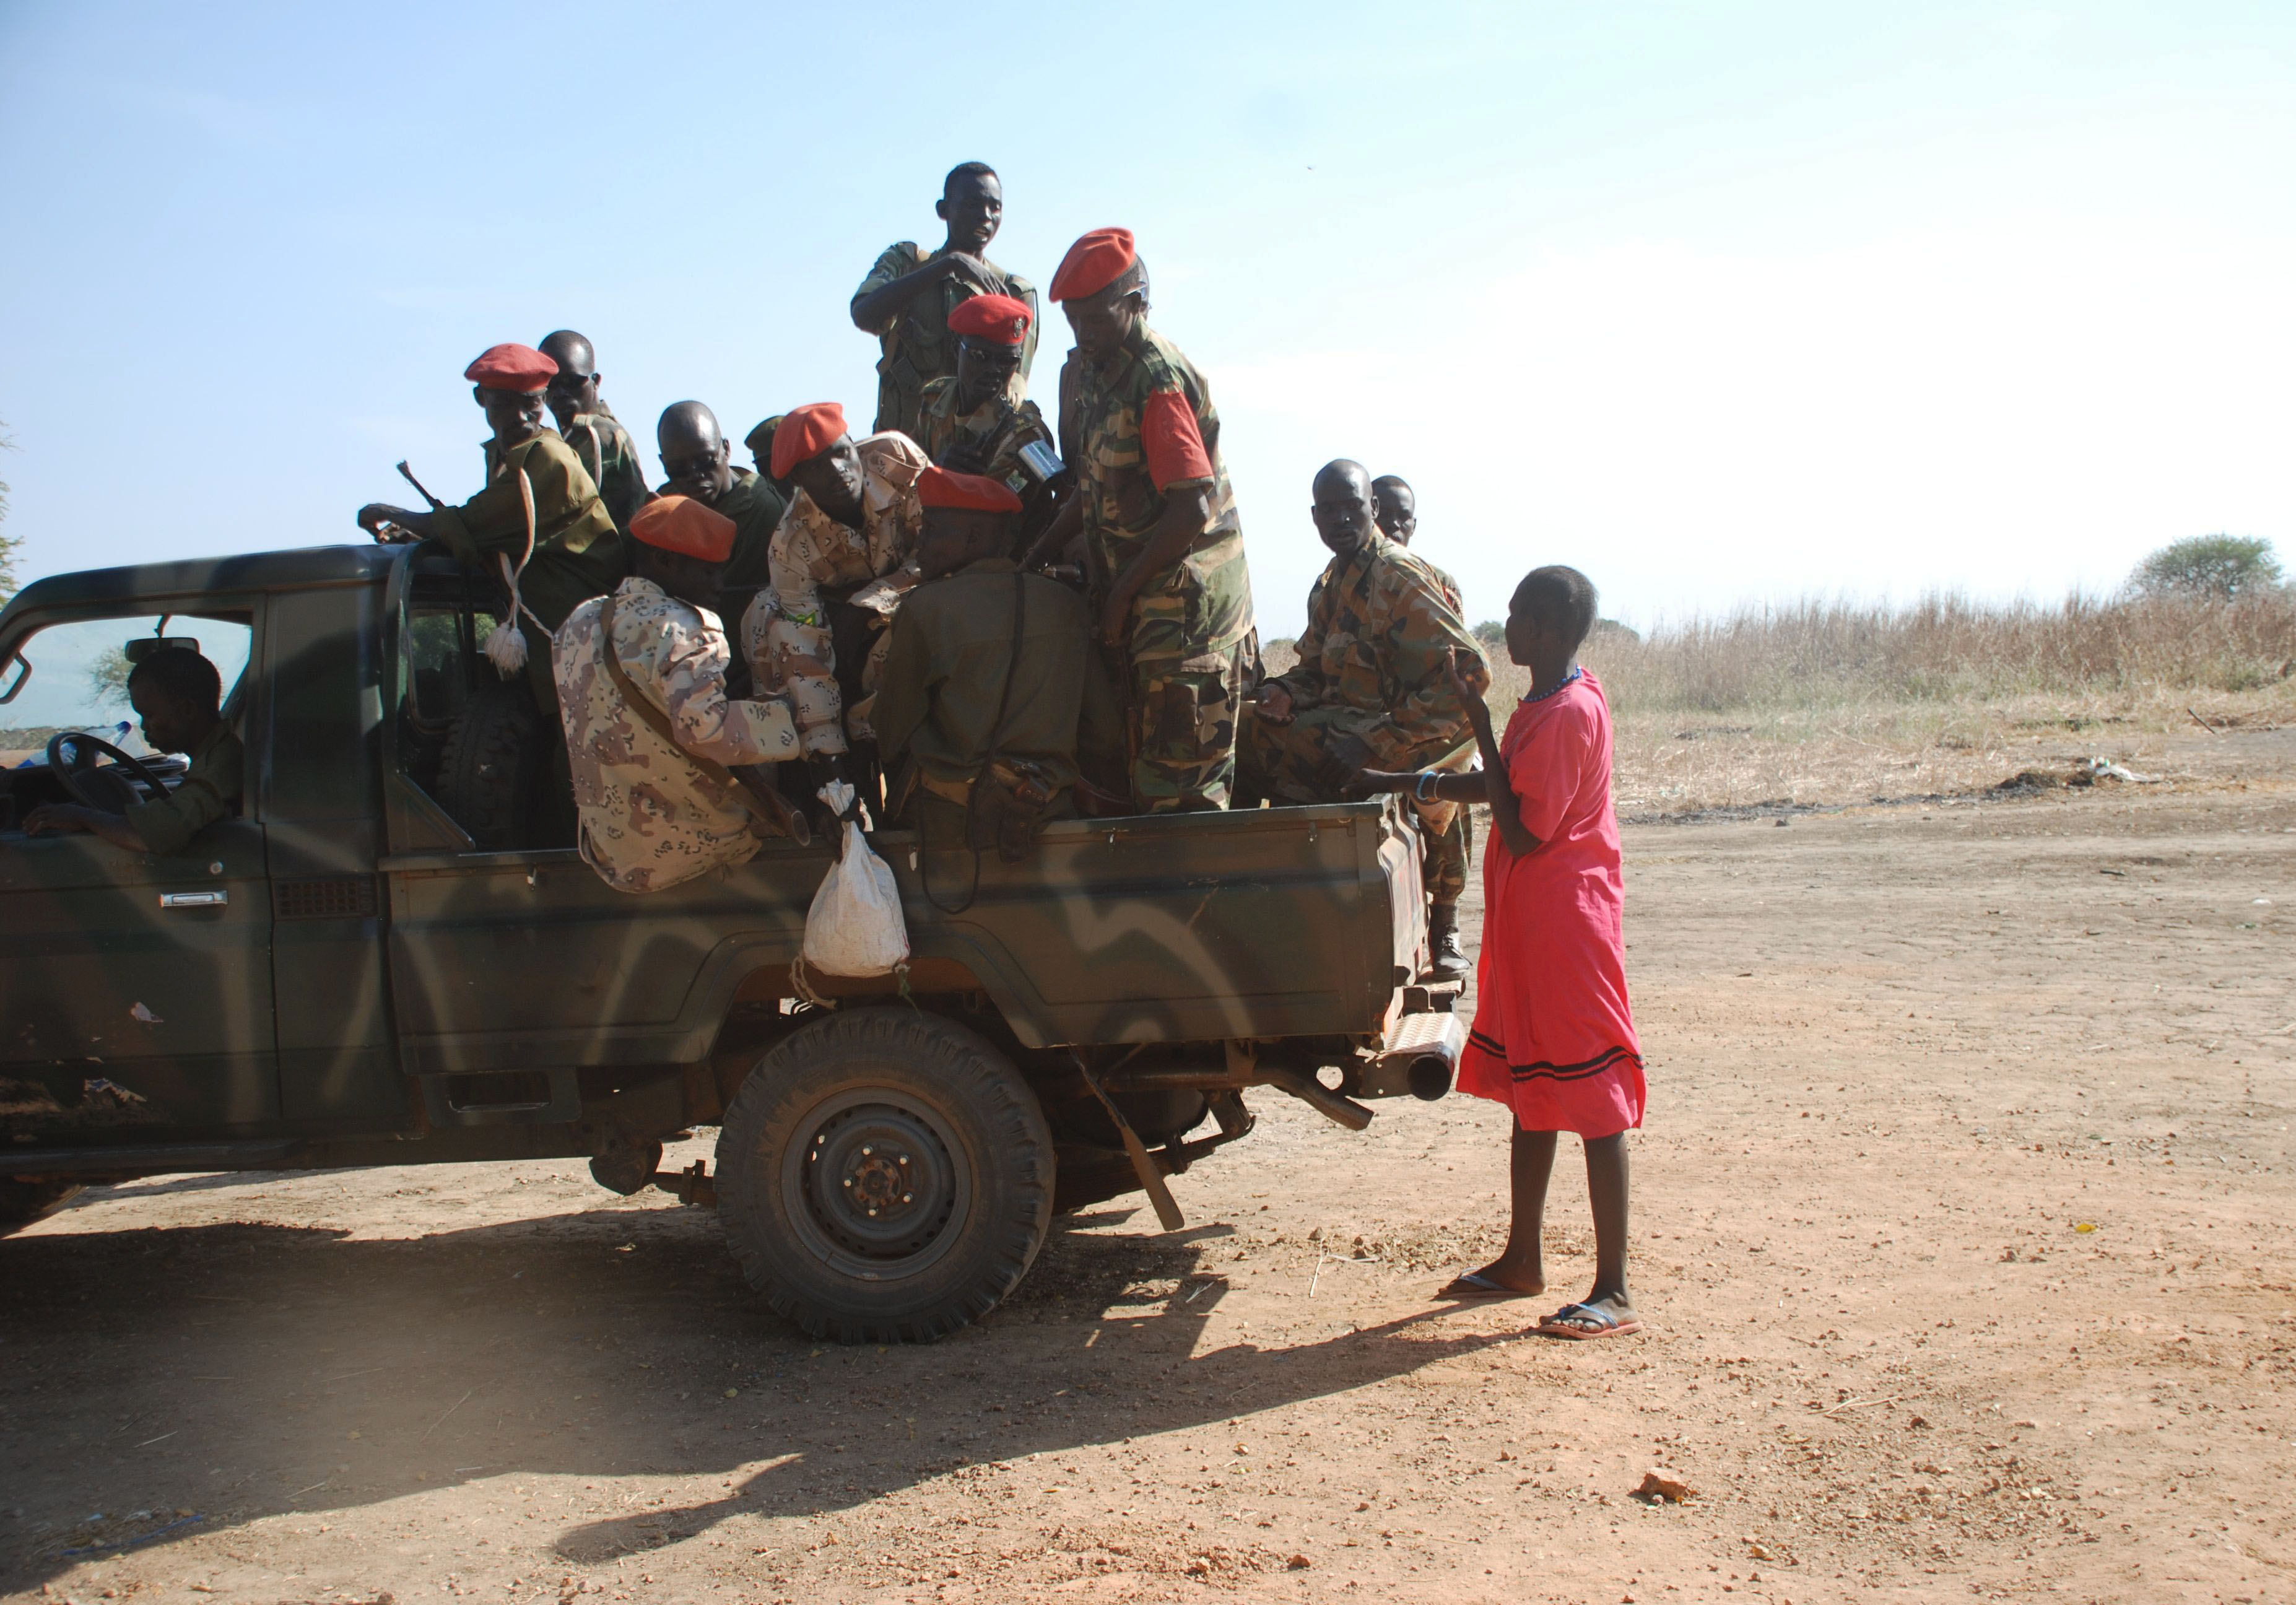 Progress on Sudan-South Sudan Border and Citizenship Issues in the Offing?